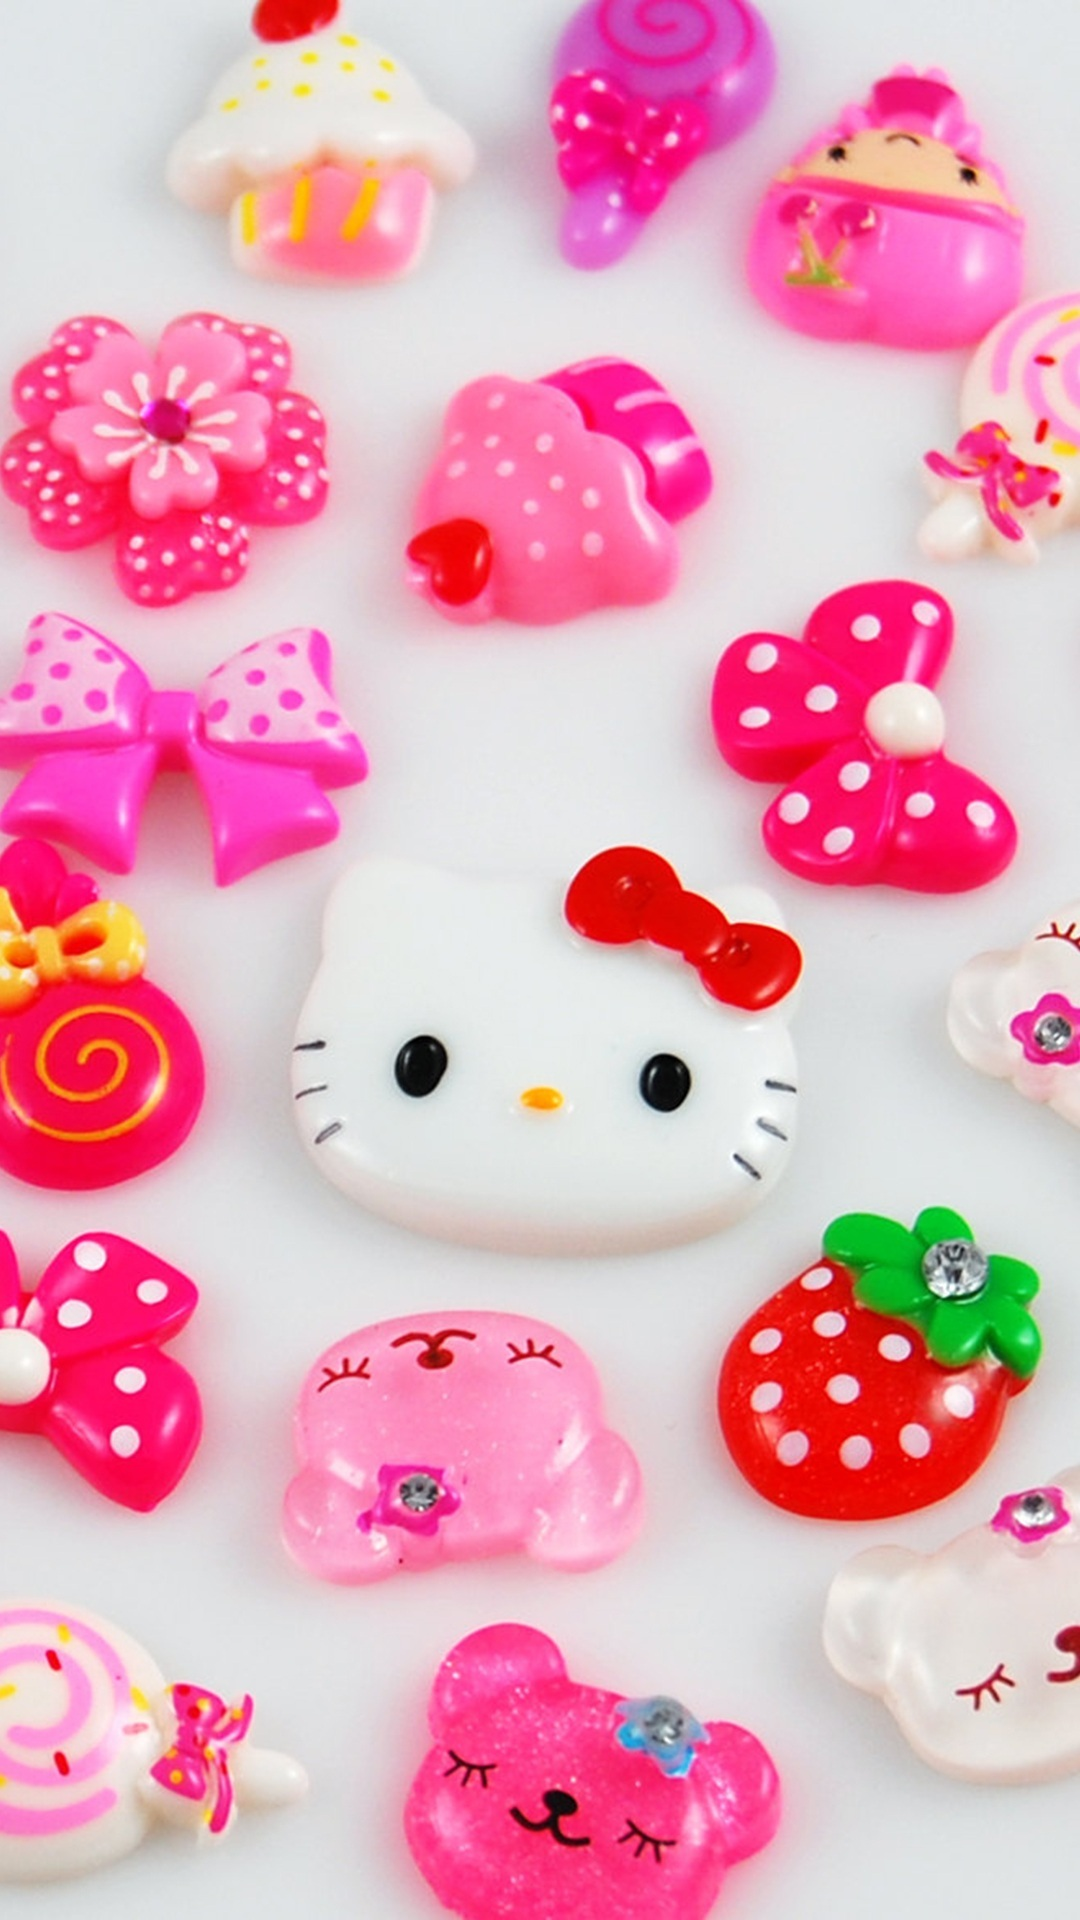 cute hello kitty iphone plus screen wallpaper